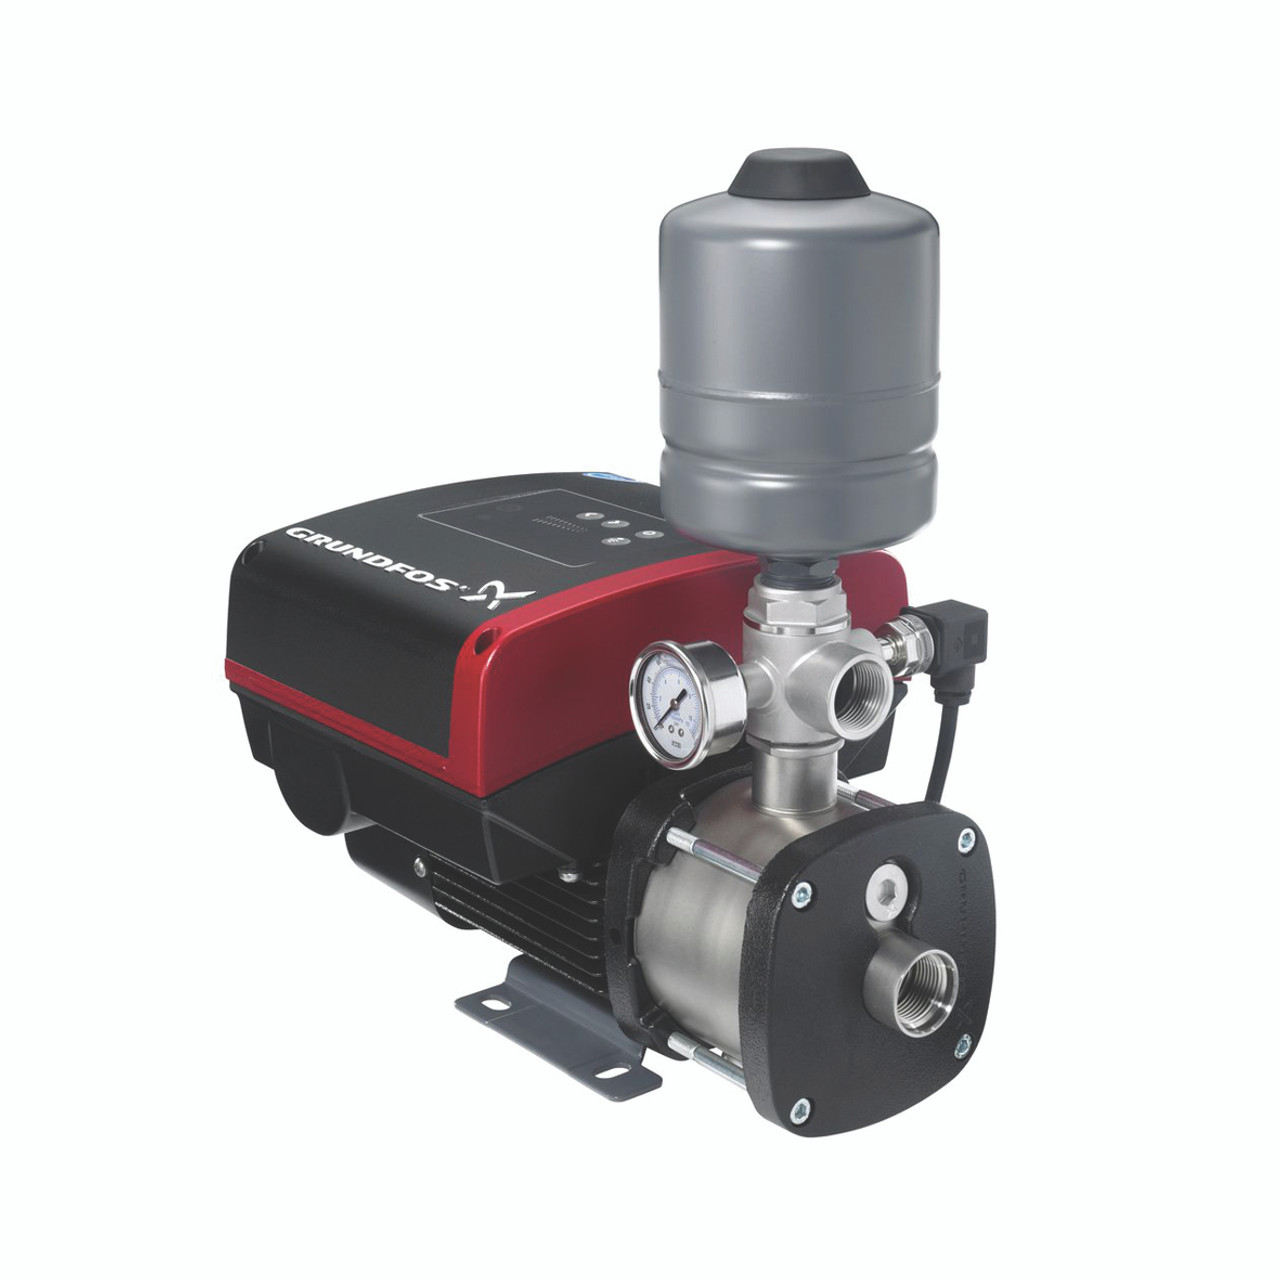 New style Grundfos CMBE constant pressure variable speed drive pump unit.